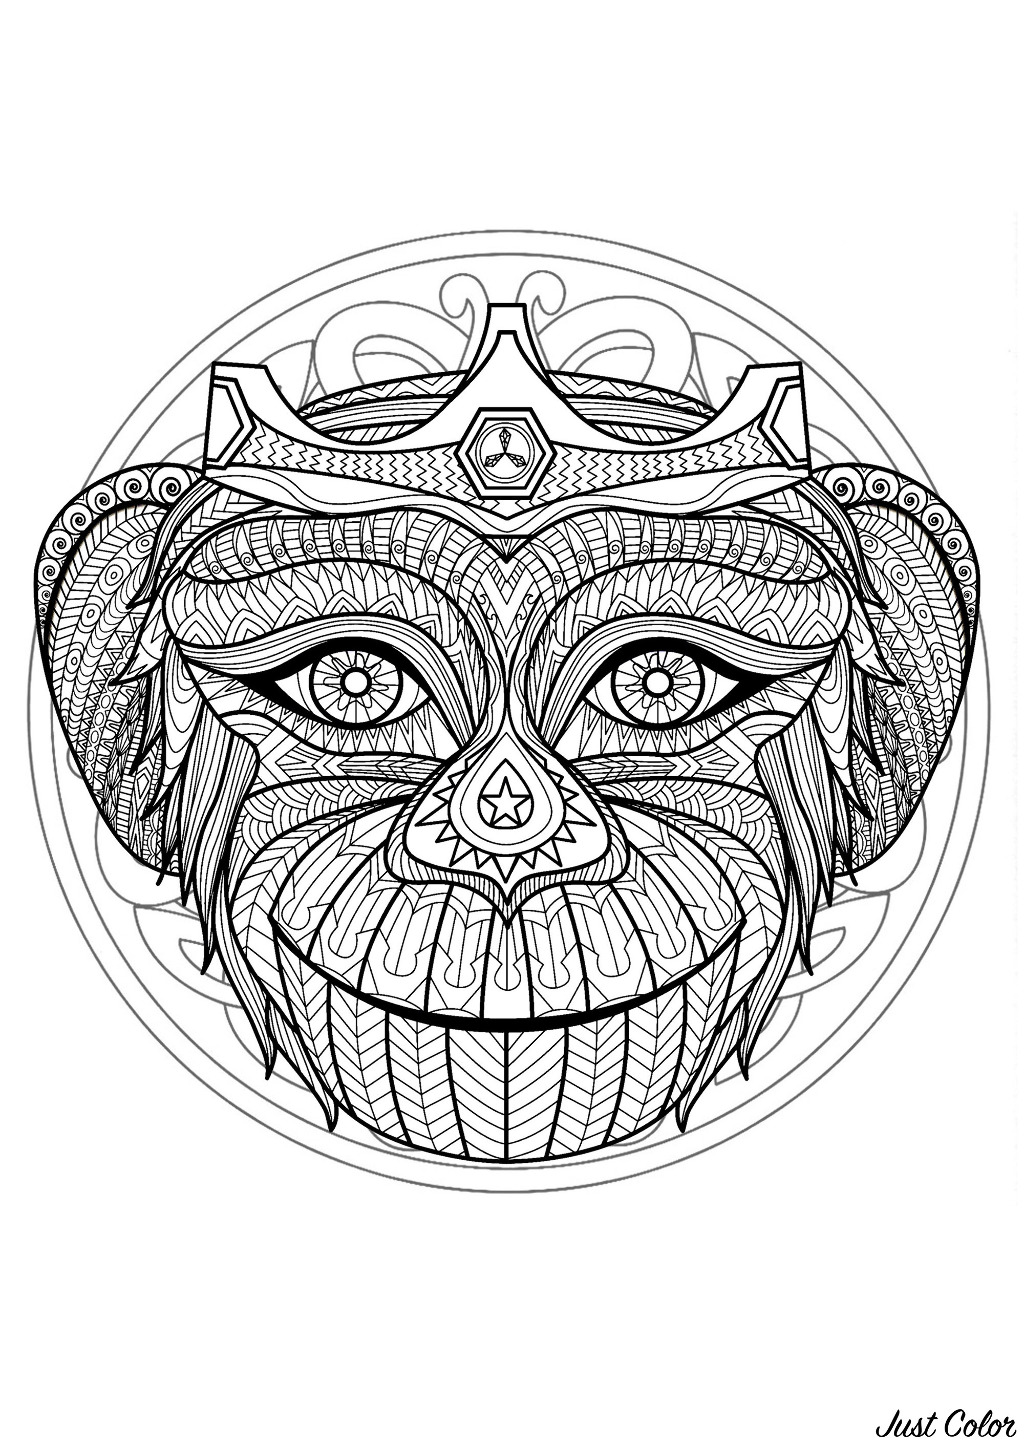 Simple Mandalas coloring page to download for free